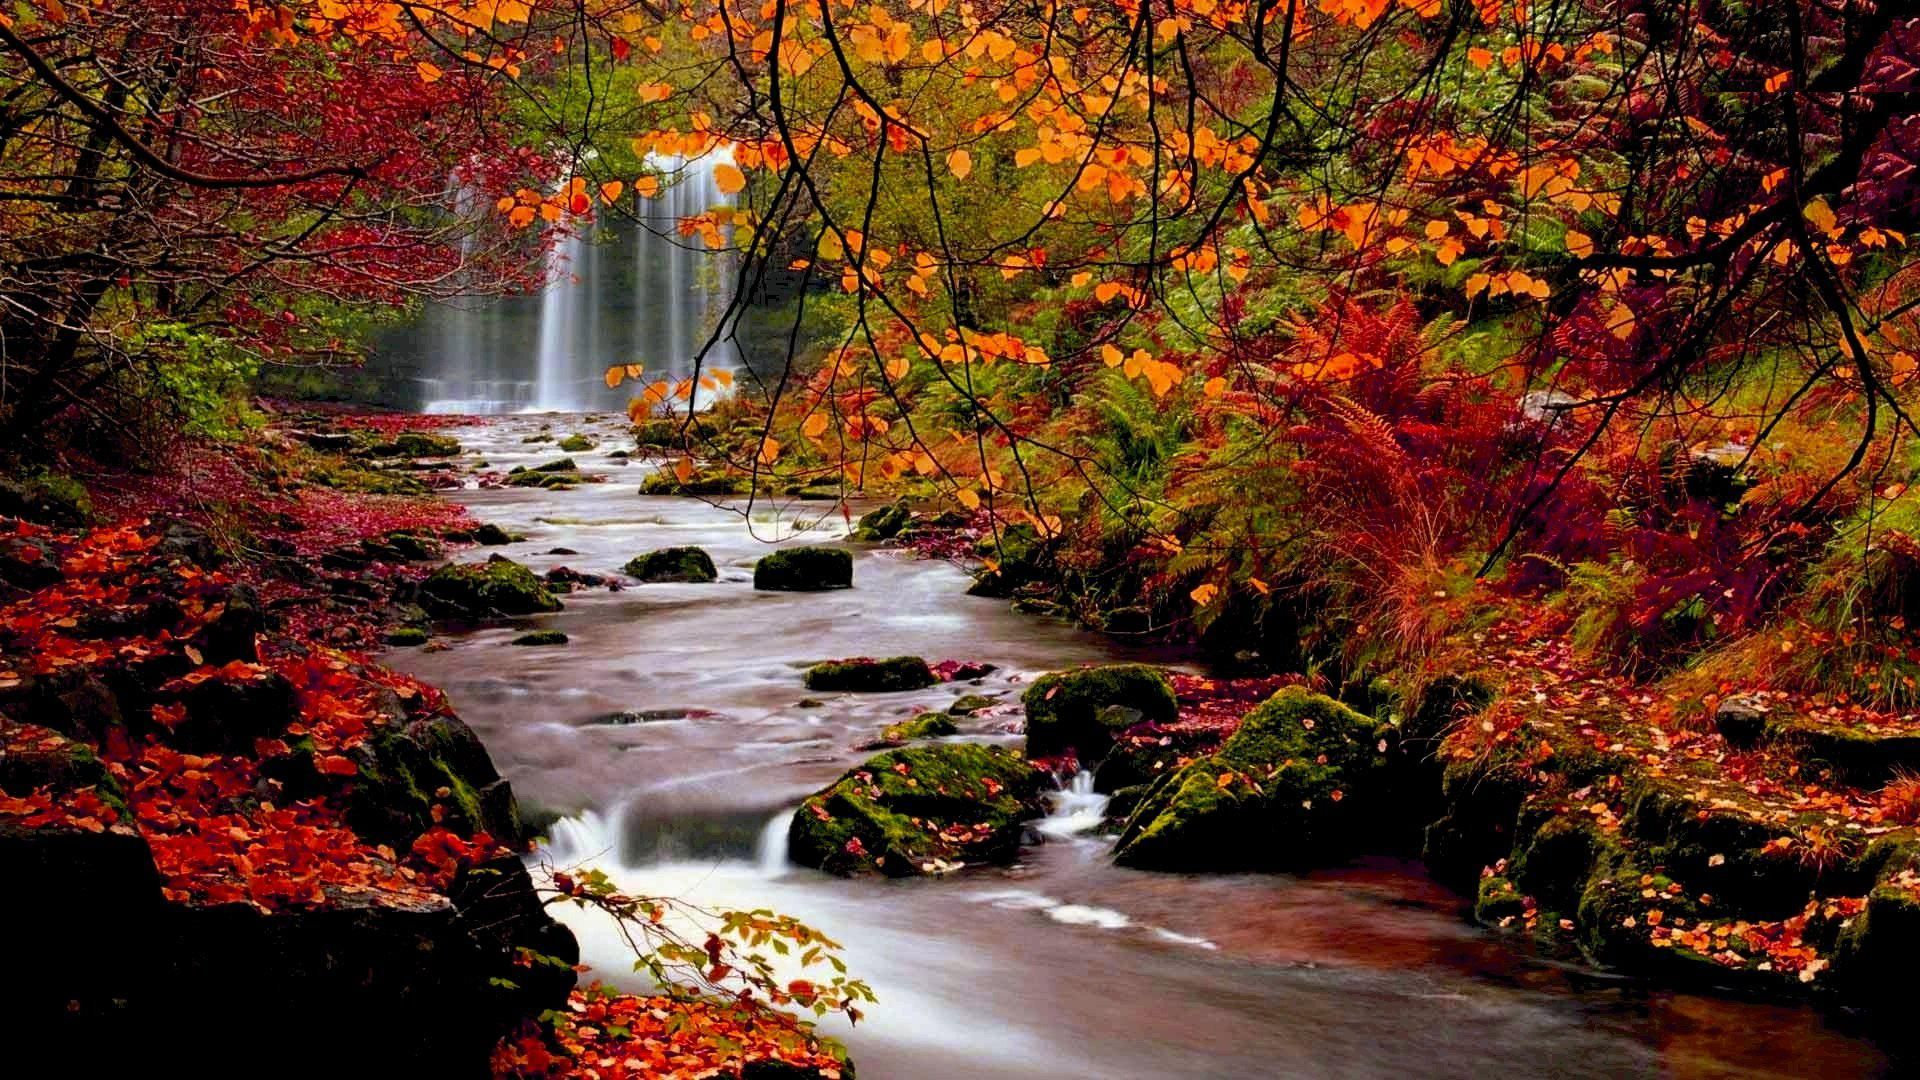 autumn wallpaper widescreen - google search | seasons-autumn